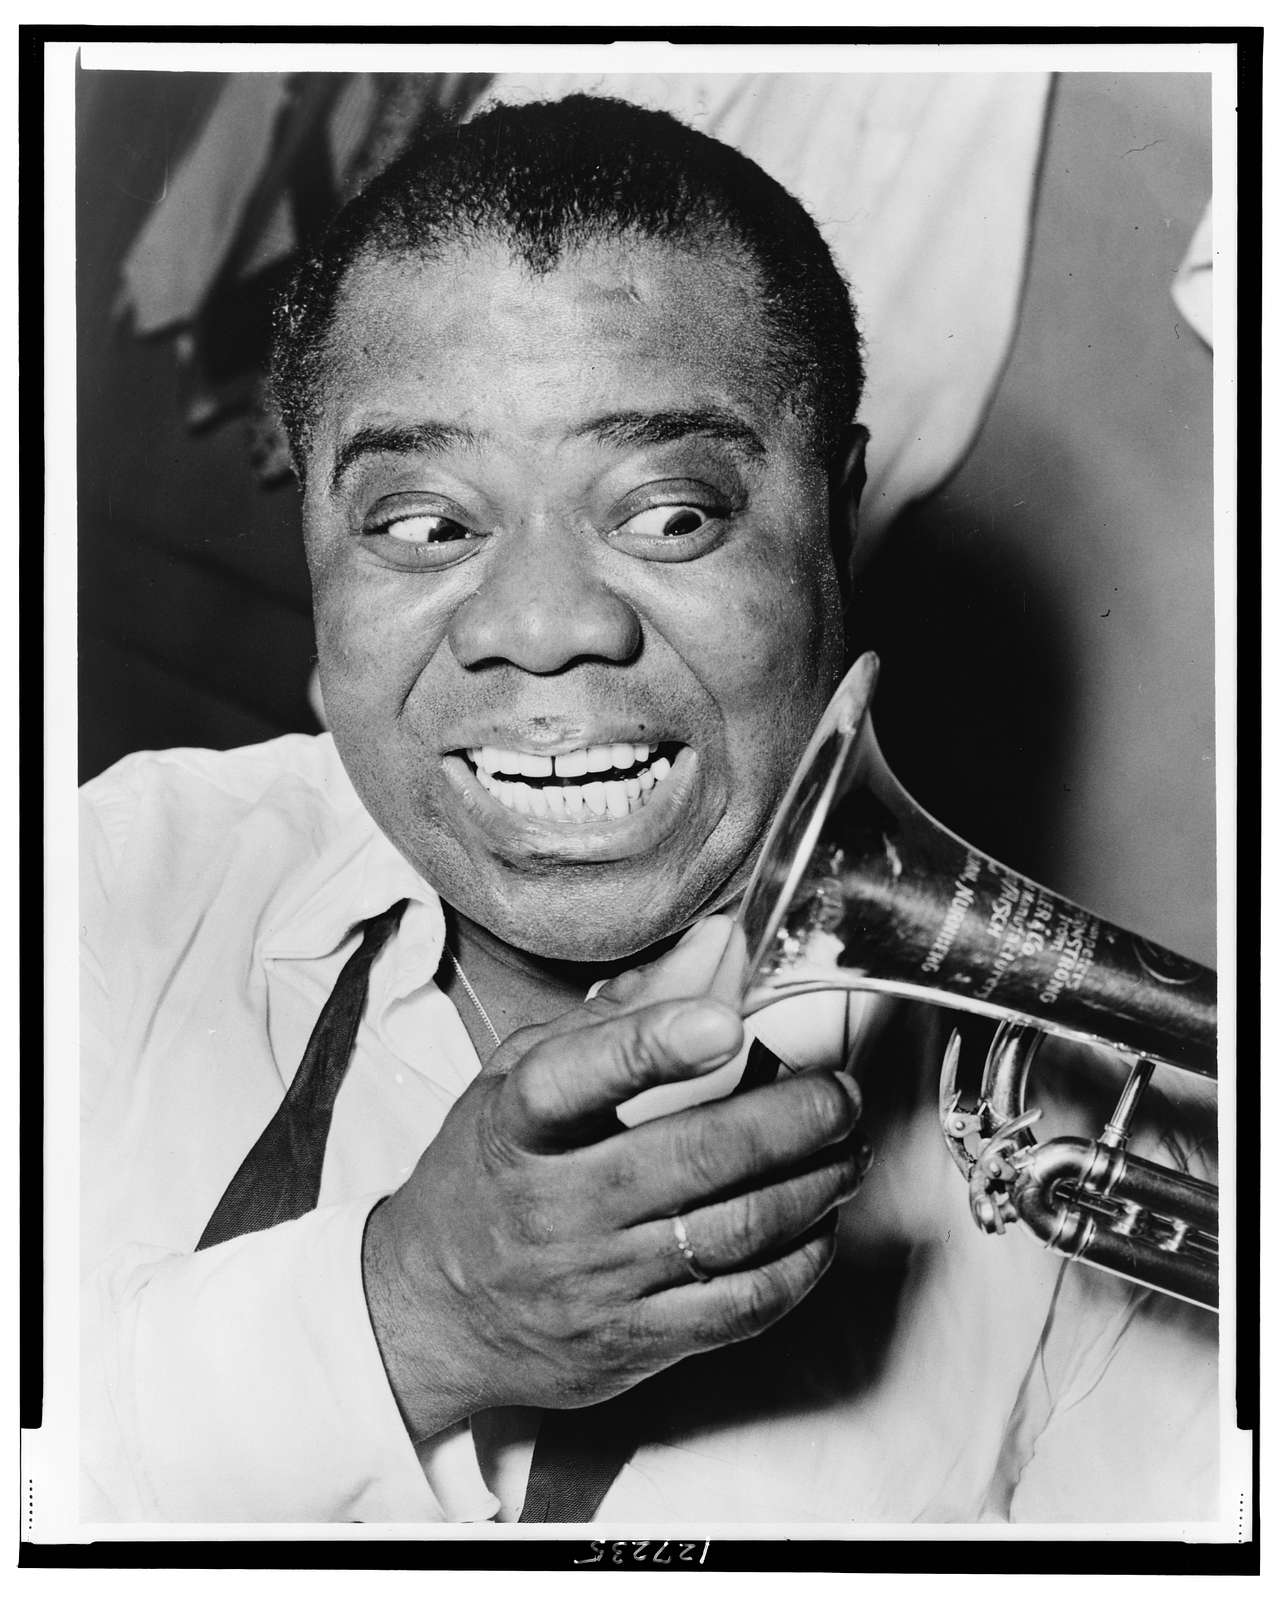 [Louis Armstrong, head-and-shoulders portrait, facing front, looking at trumpet] / World Telegram & Sun photo by Herman Hiller.